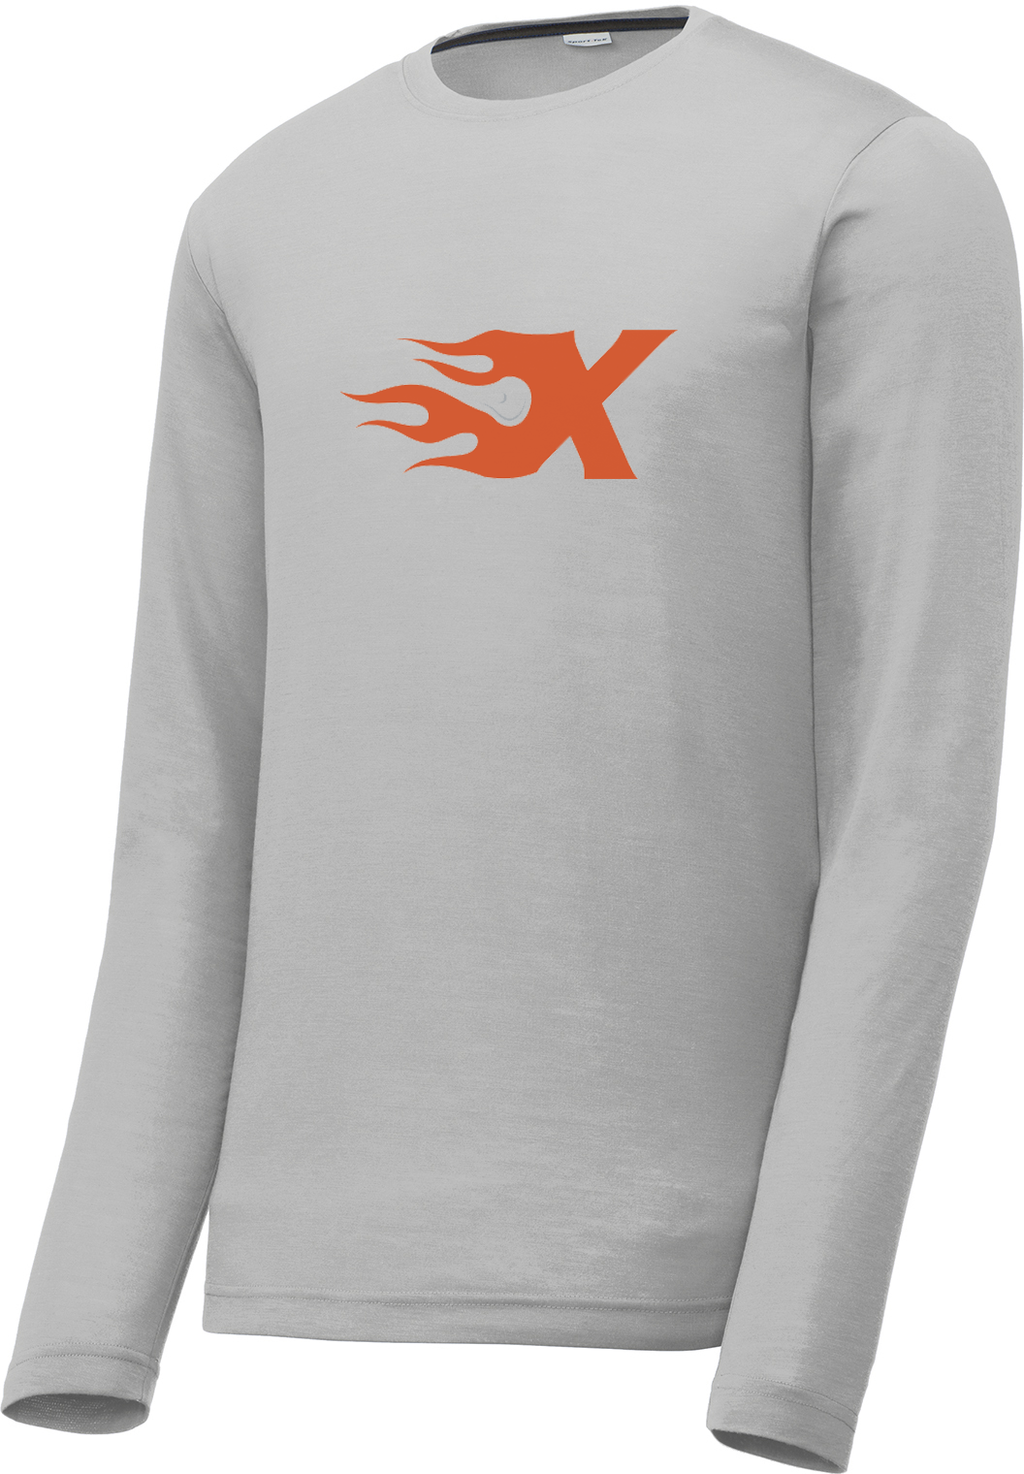 Xtreme Lacrosse Silver Long Sleeve CottonTouch Performance Shirt